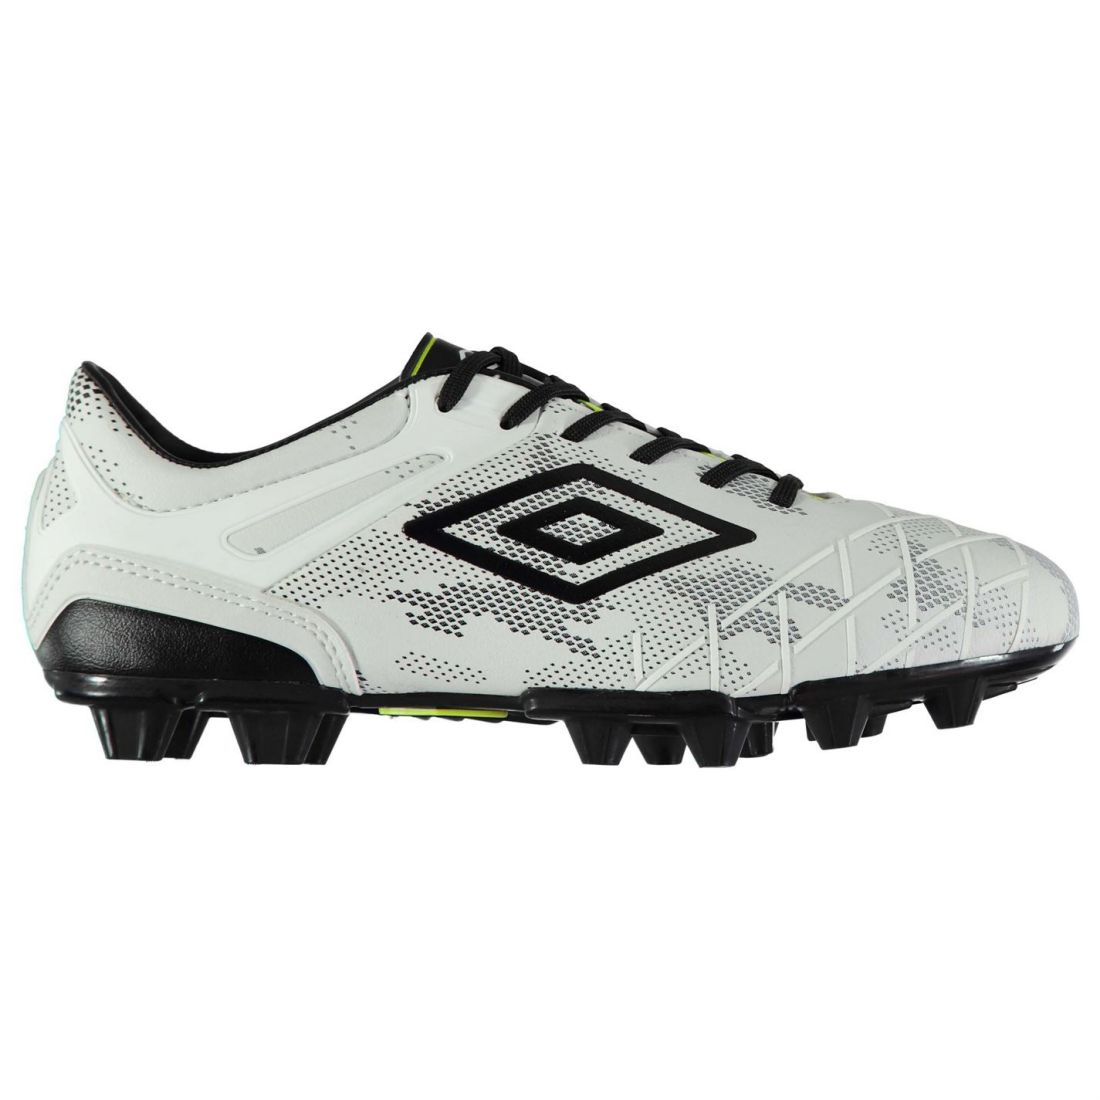 0051d17bd Umbro UX 2.0 Premier HG Football Boots Mens Gents Firm Ground ...